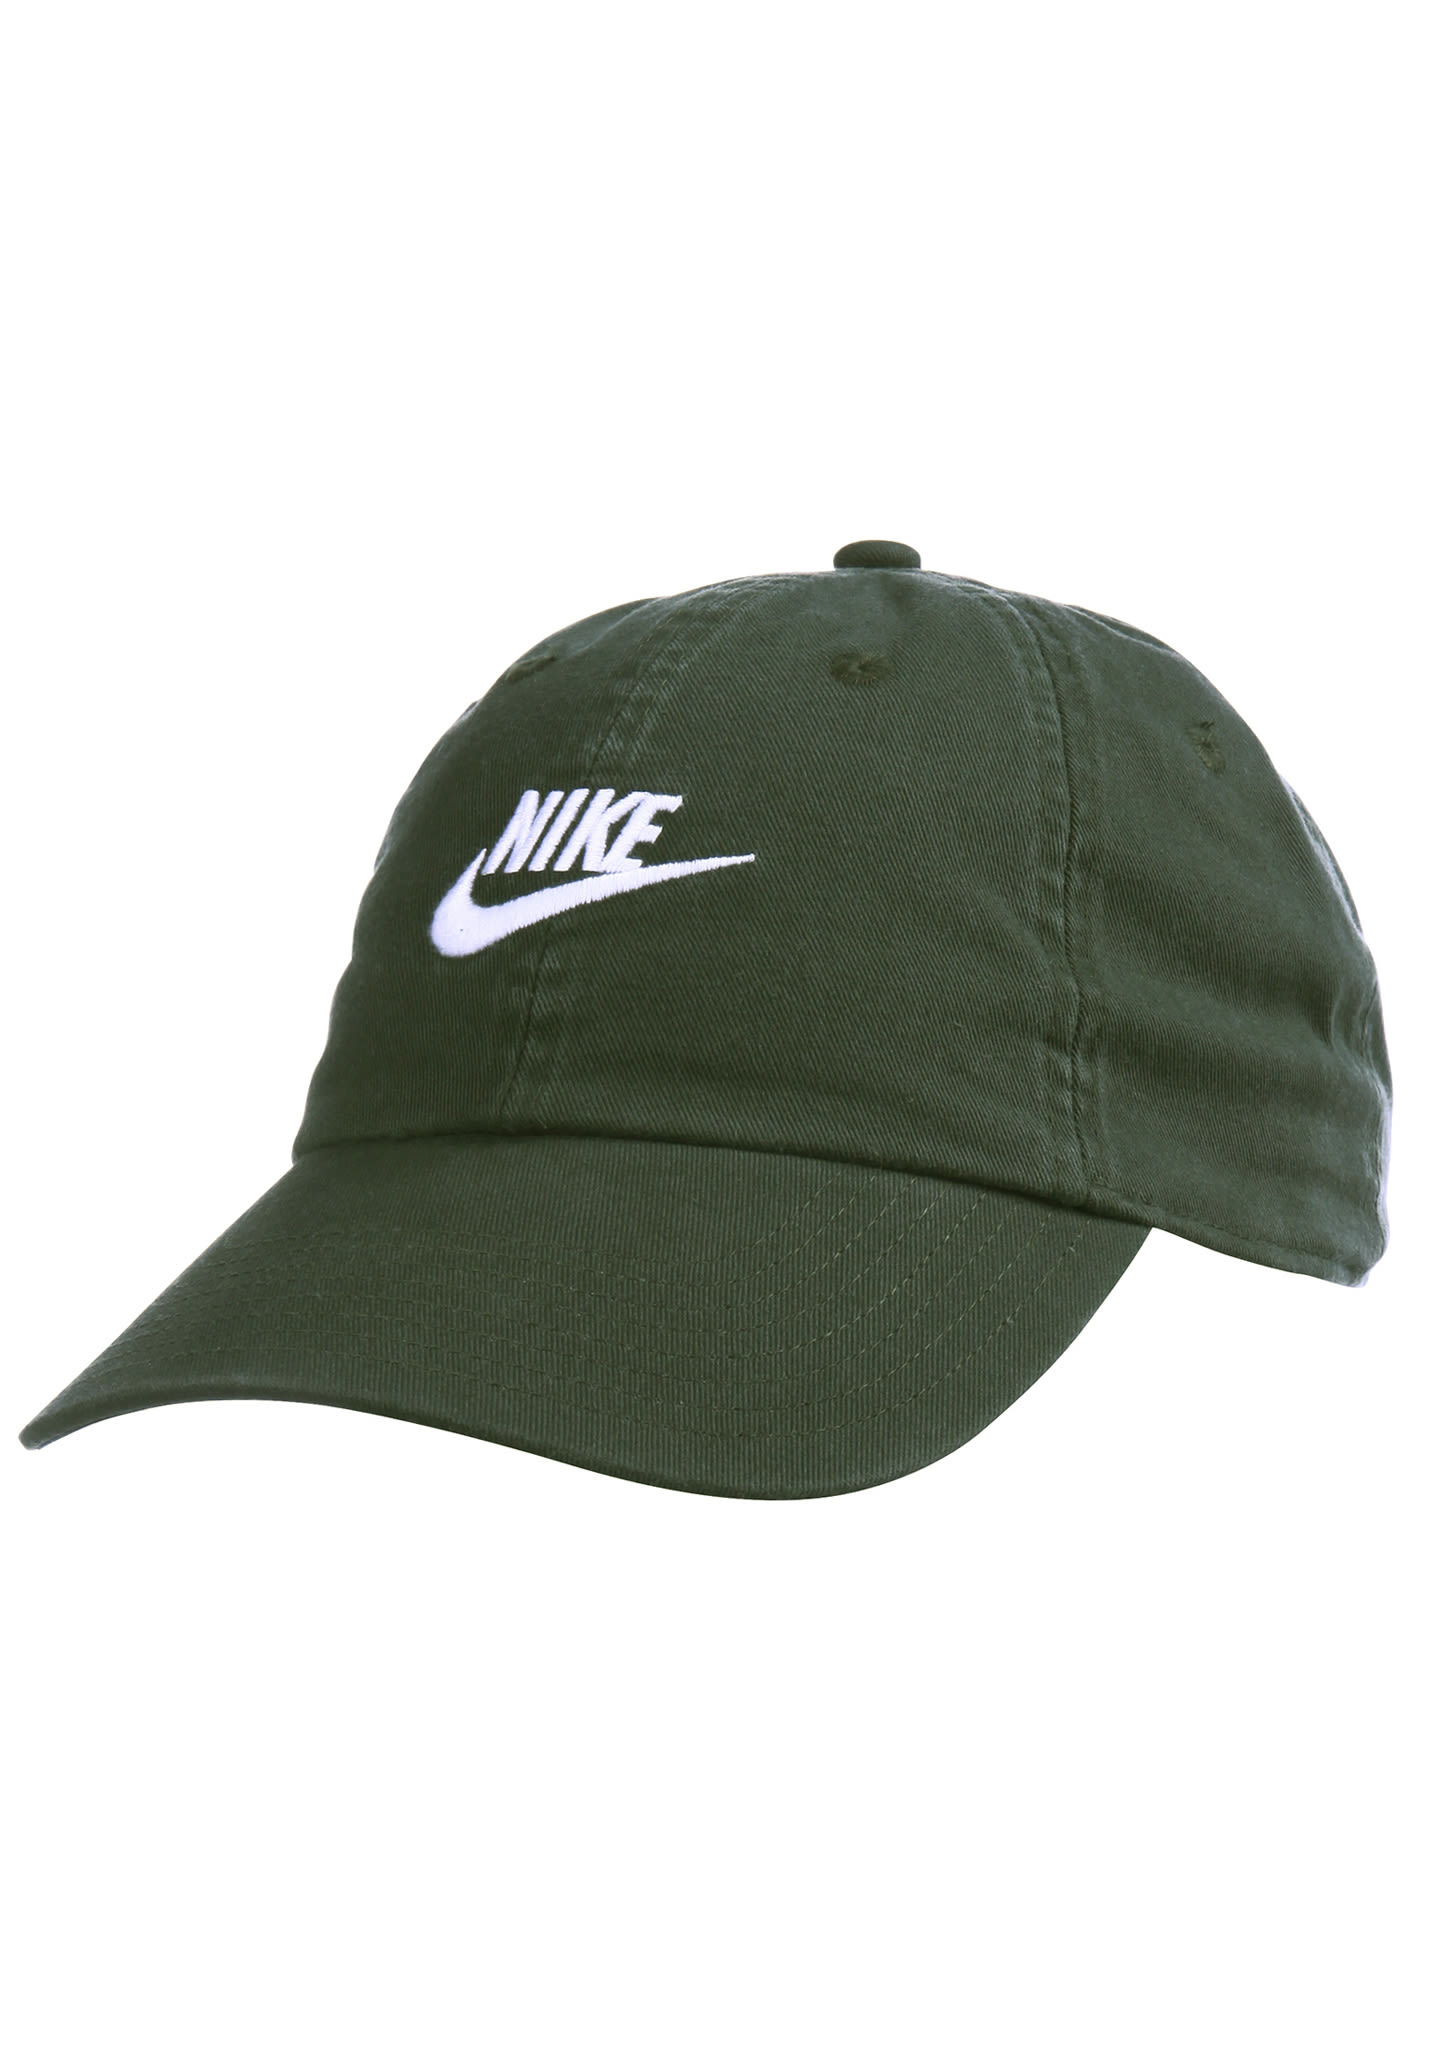 NIKE SPORTSWEAR H86 Futura Washed - Cap - Green - Planet Sports 58f76e06f74a